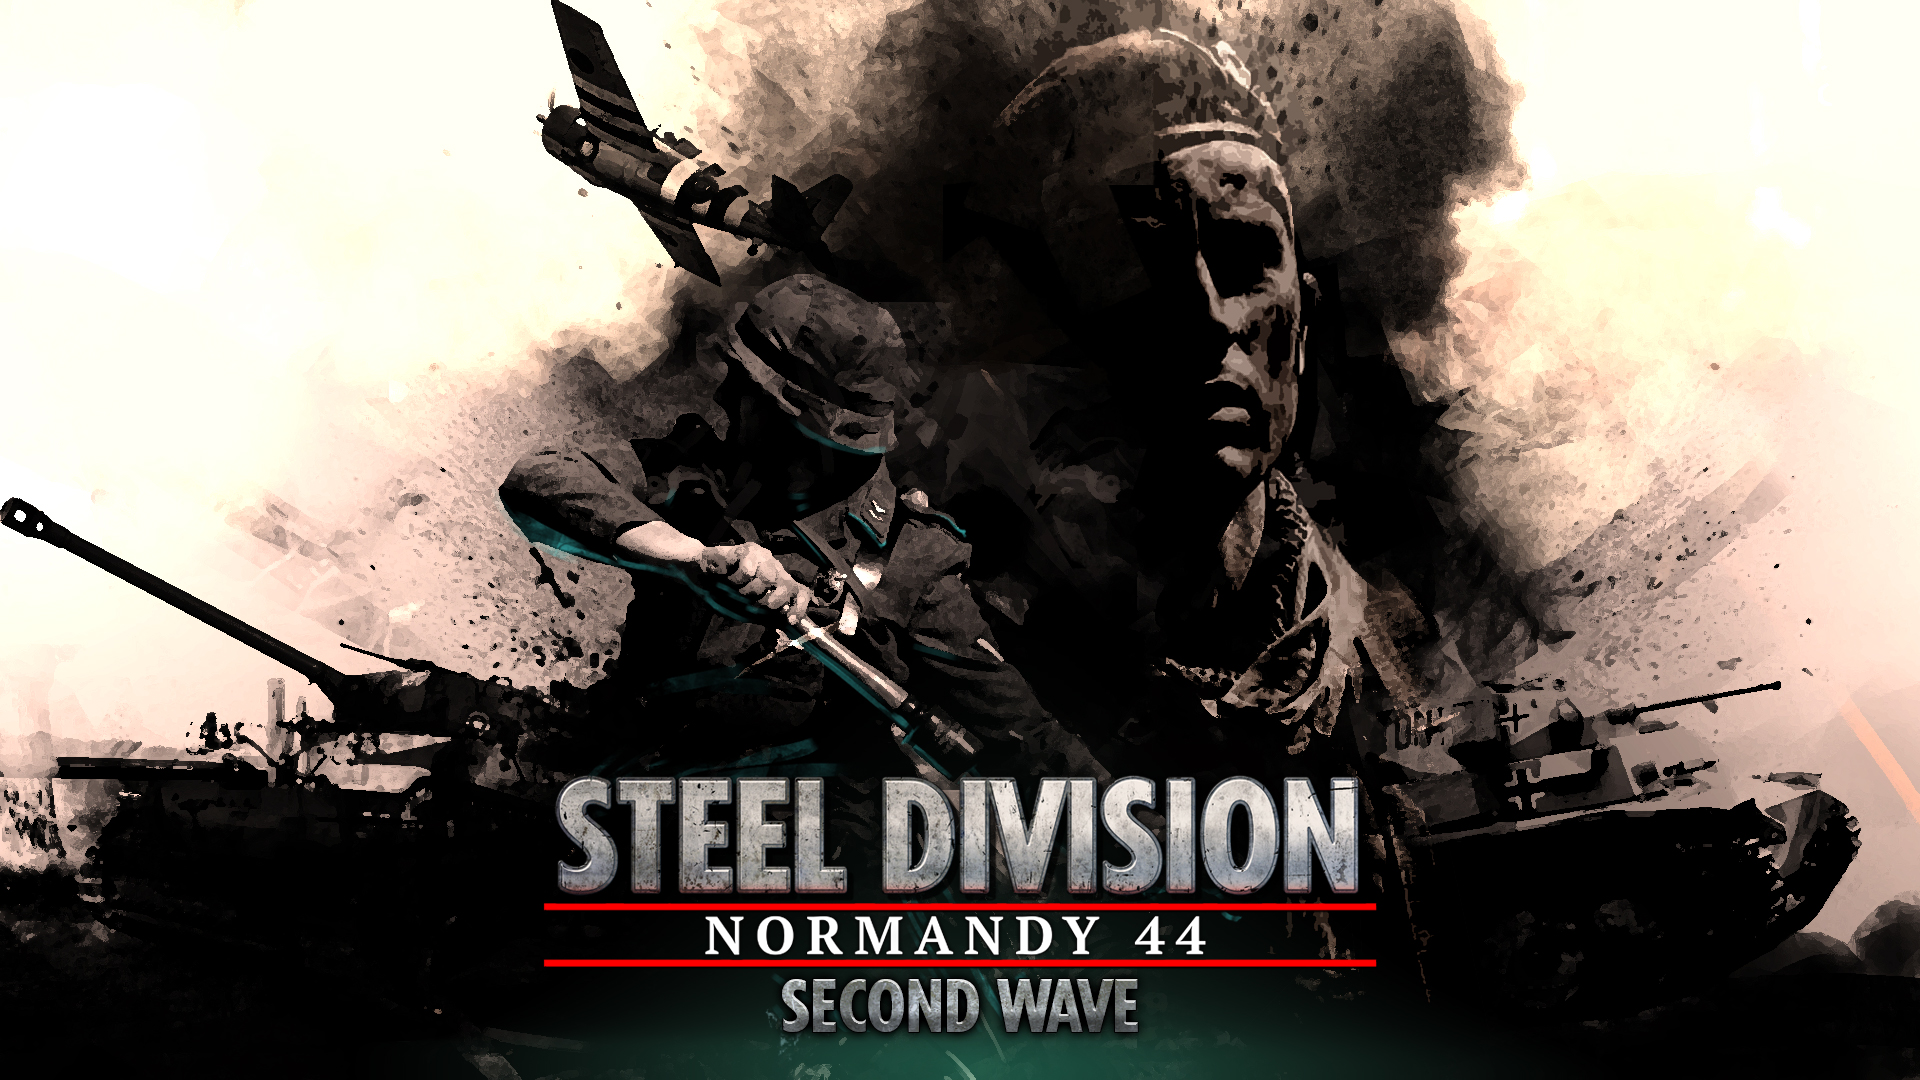 Steel Division: Normandy 44 – Second Wave DLC Review